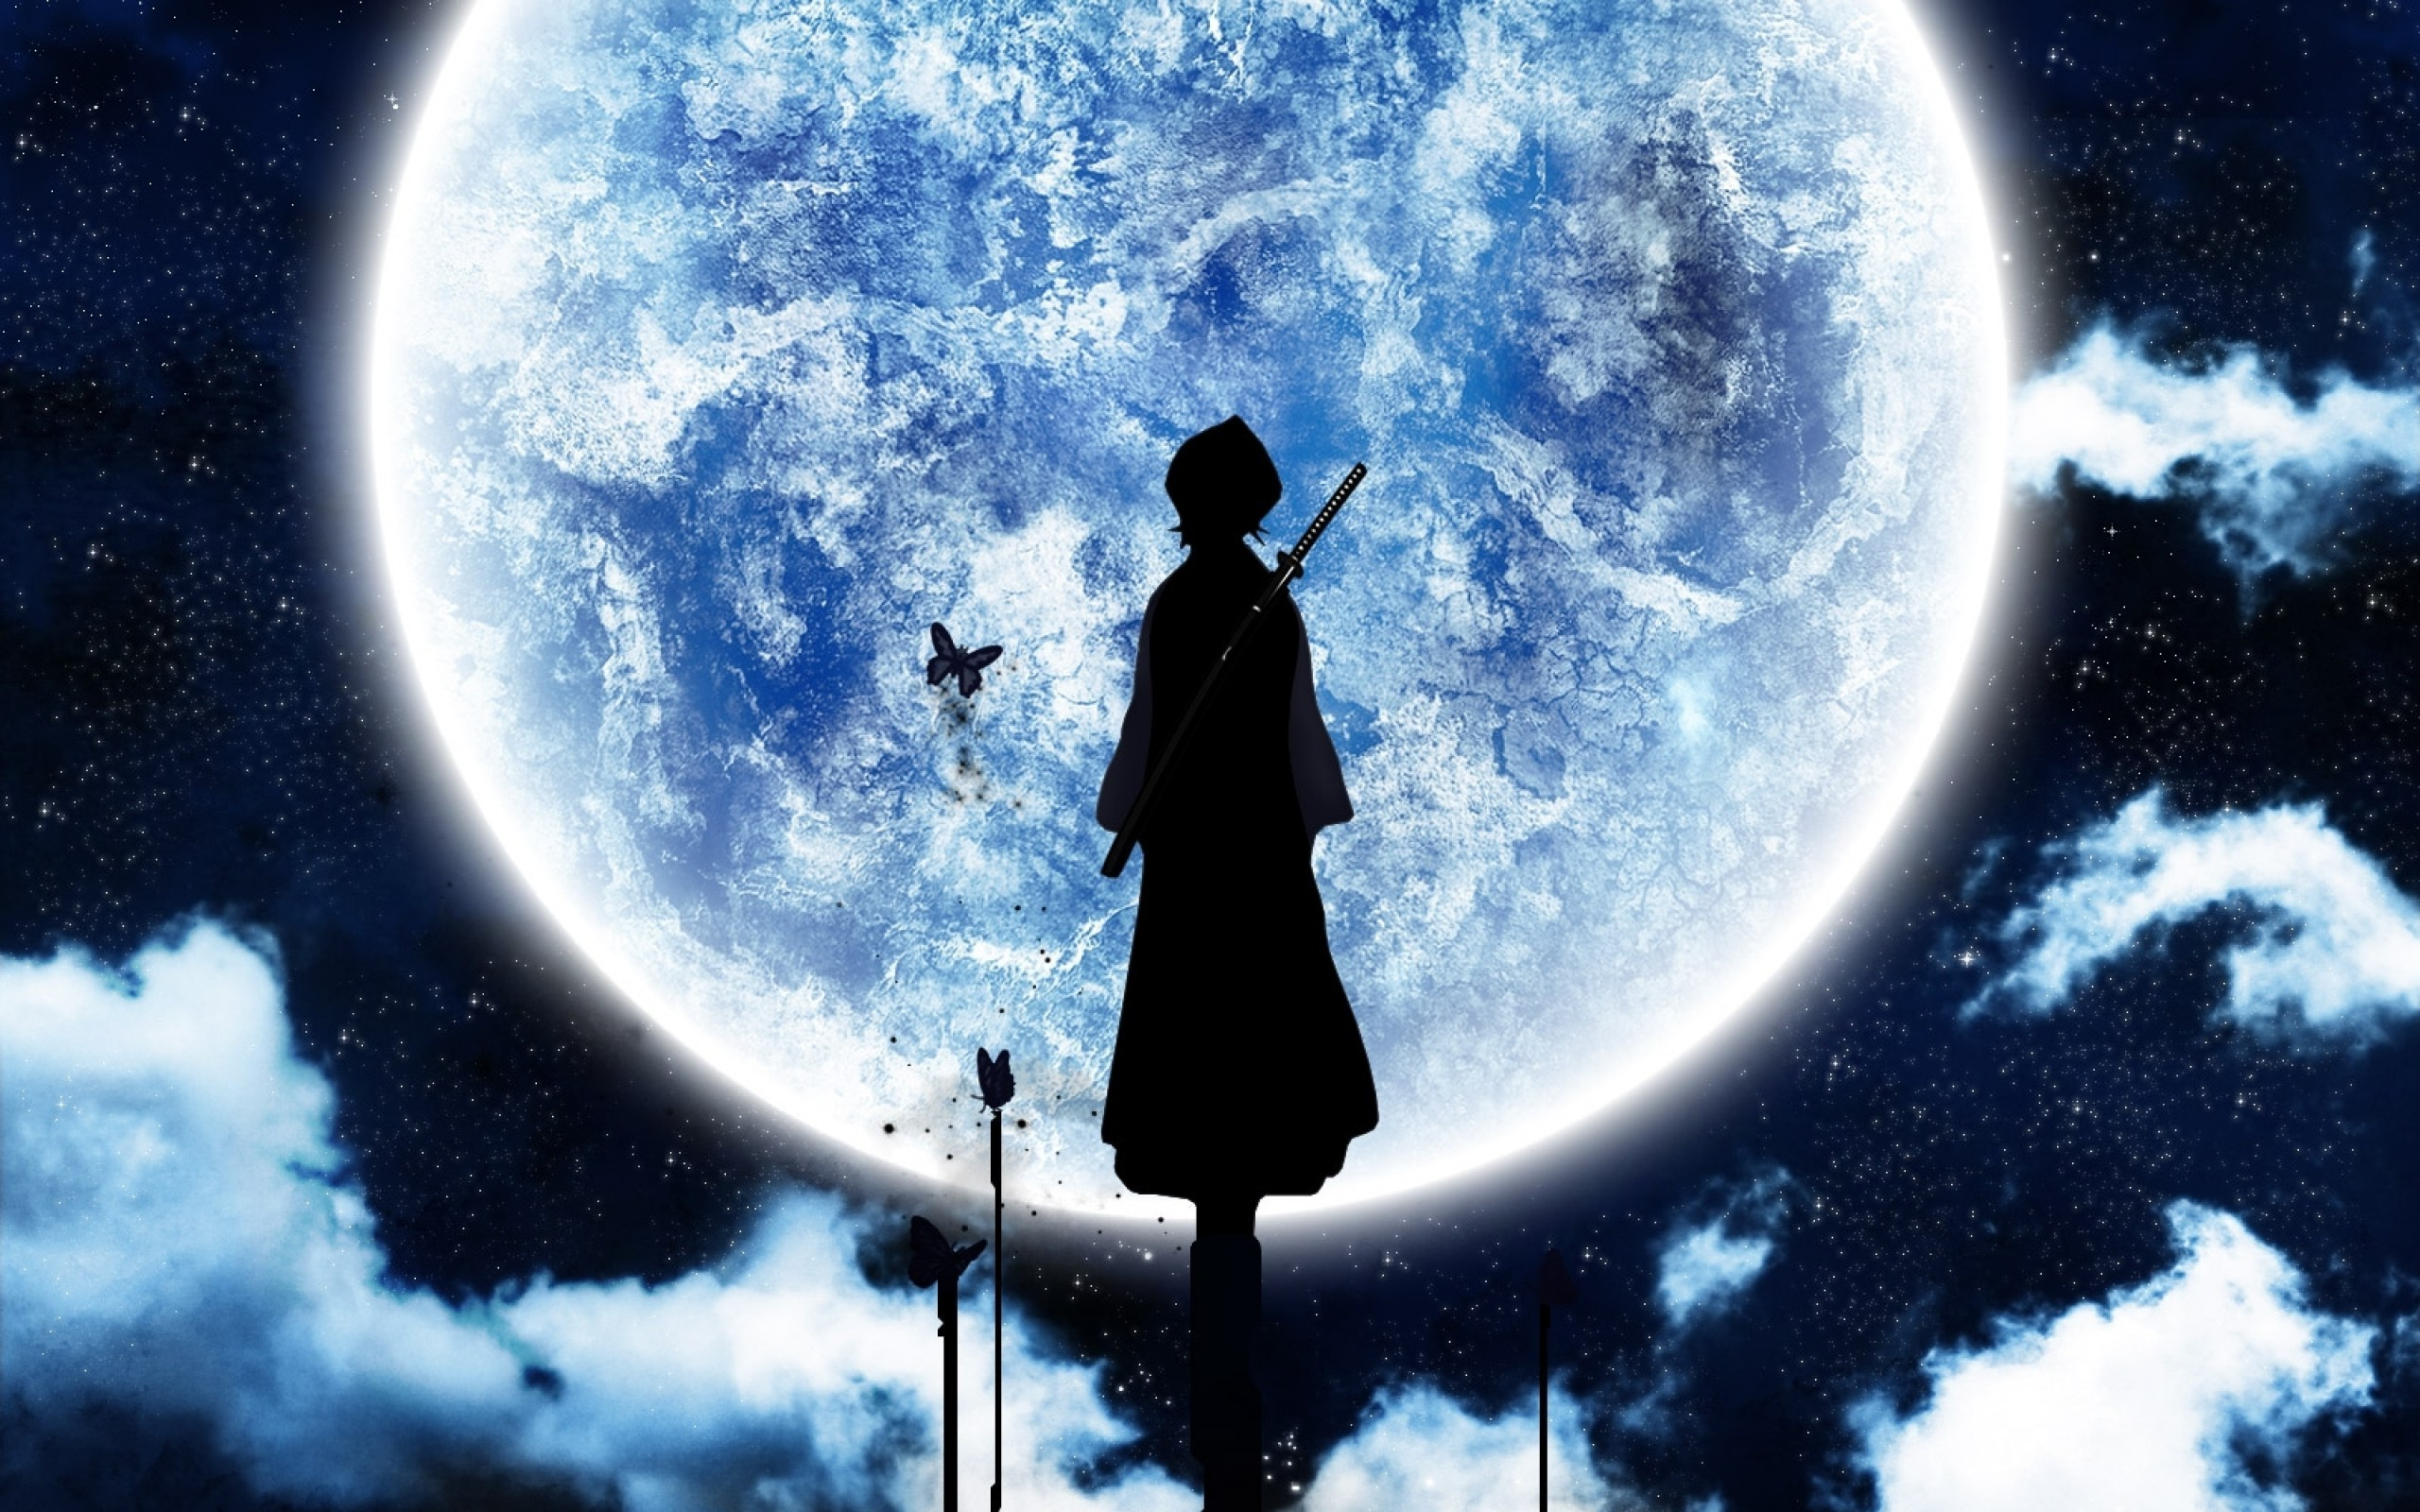 2560x1600 Bleach, Moonlight, Moon, Silhouette, Anime Wallpapers HD / Desktop and  Mobile Backgrounds